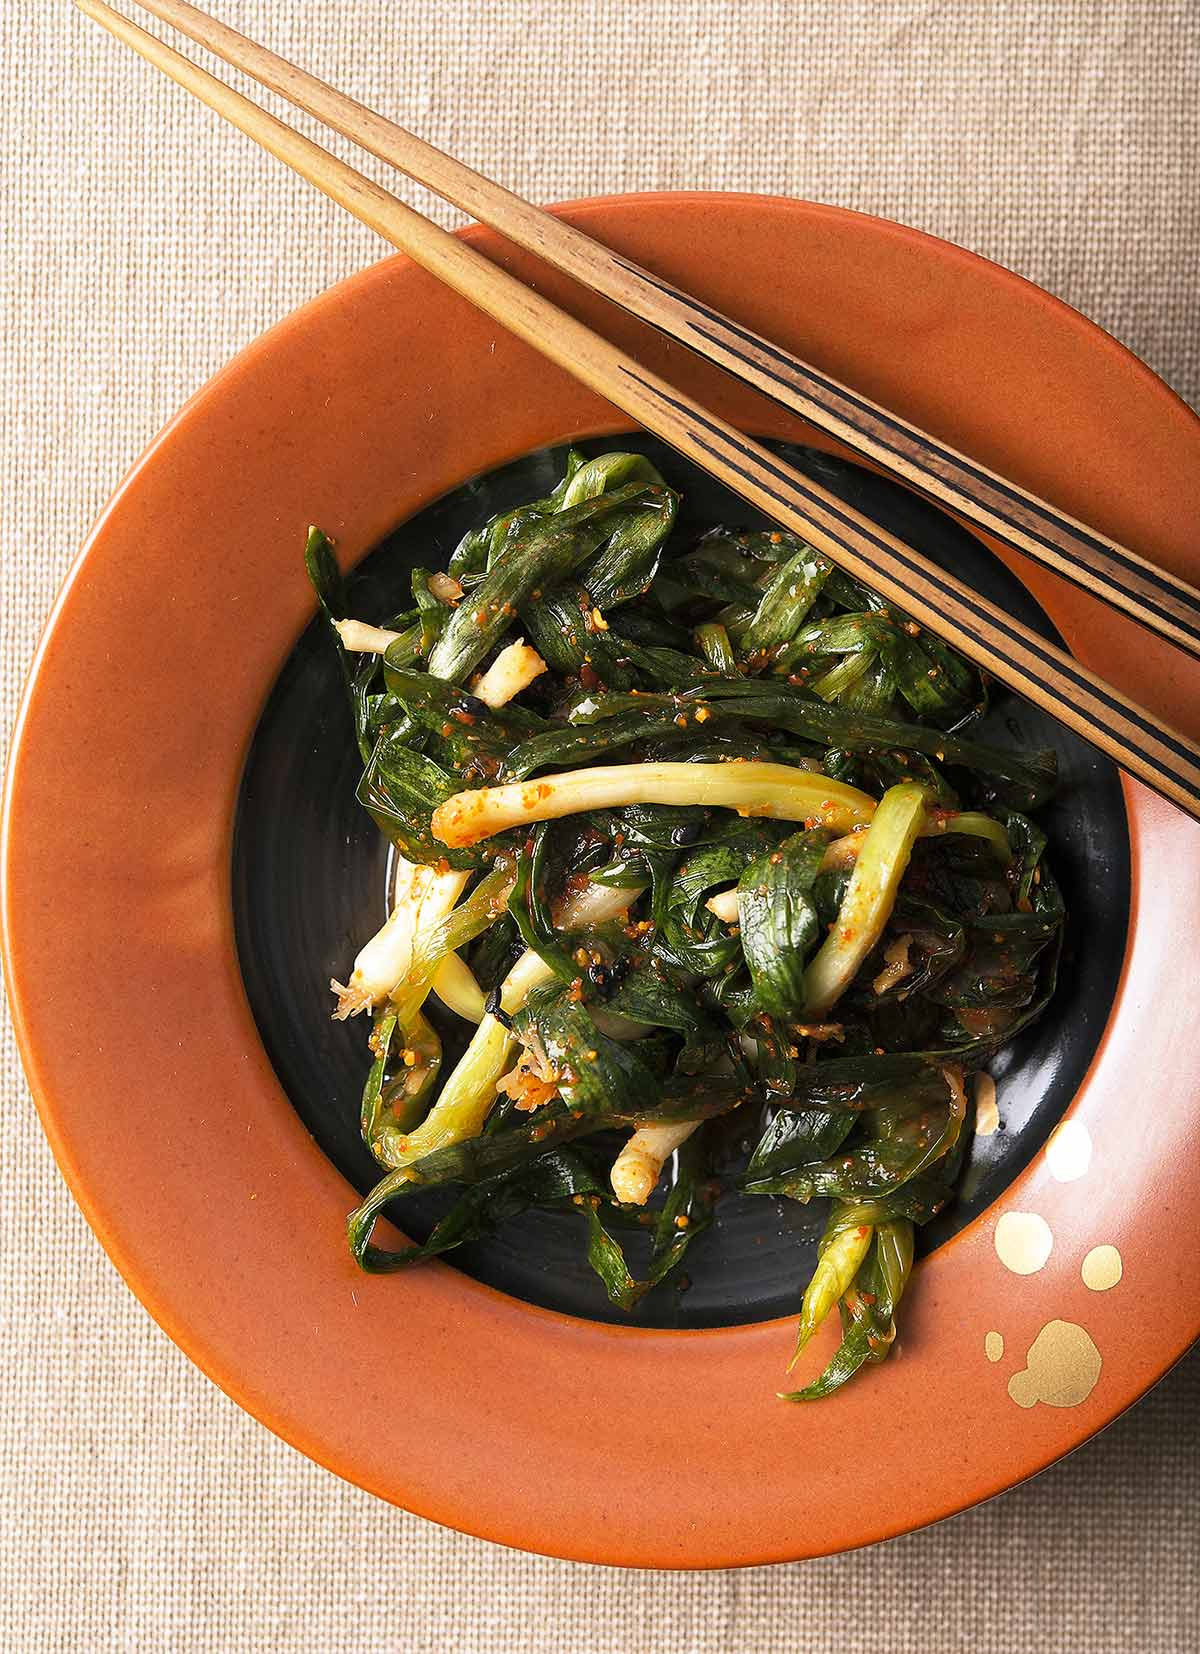 Green onion kimchi on a plate